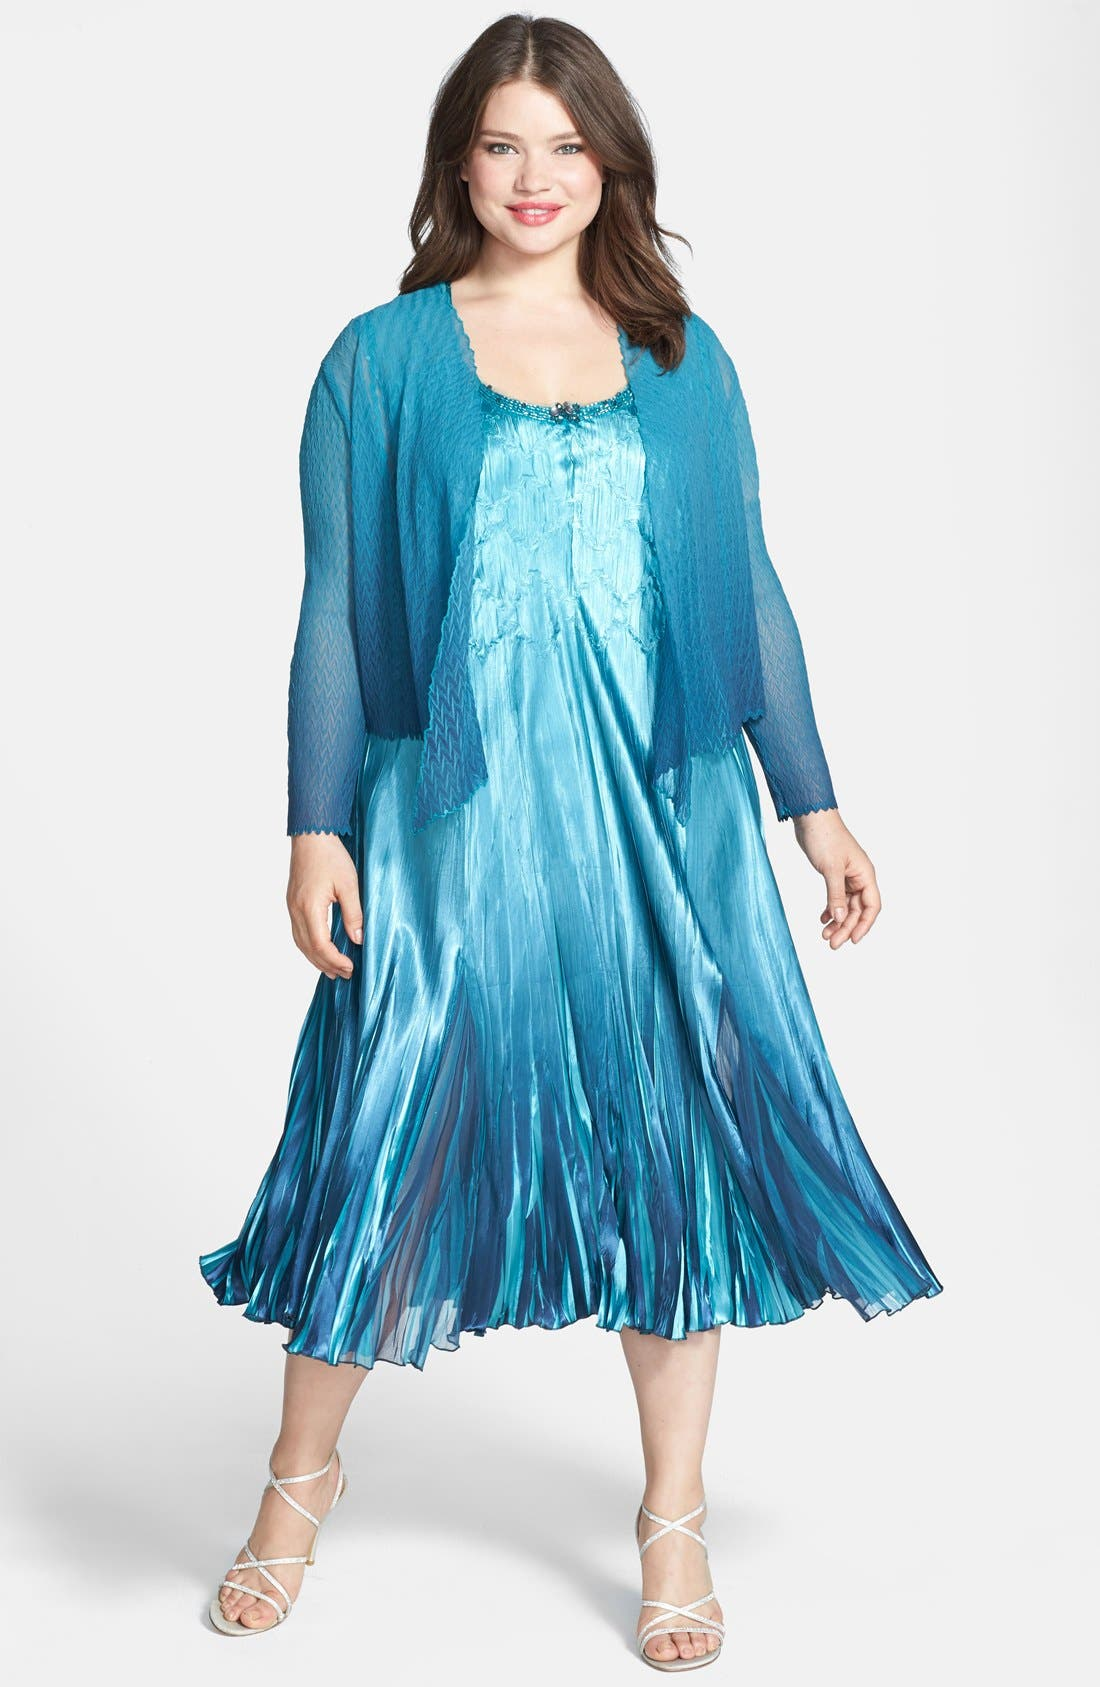 Alternate Image 1 Selected - Komarov Chiffon & Charmeuse Dress with Jacket (Plus Size)